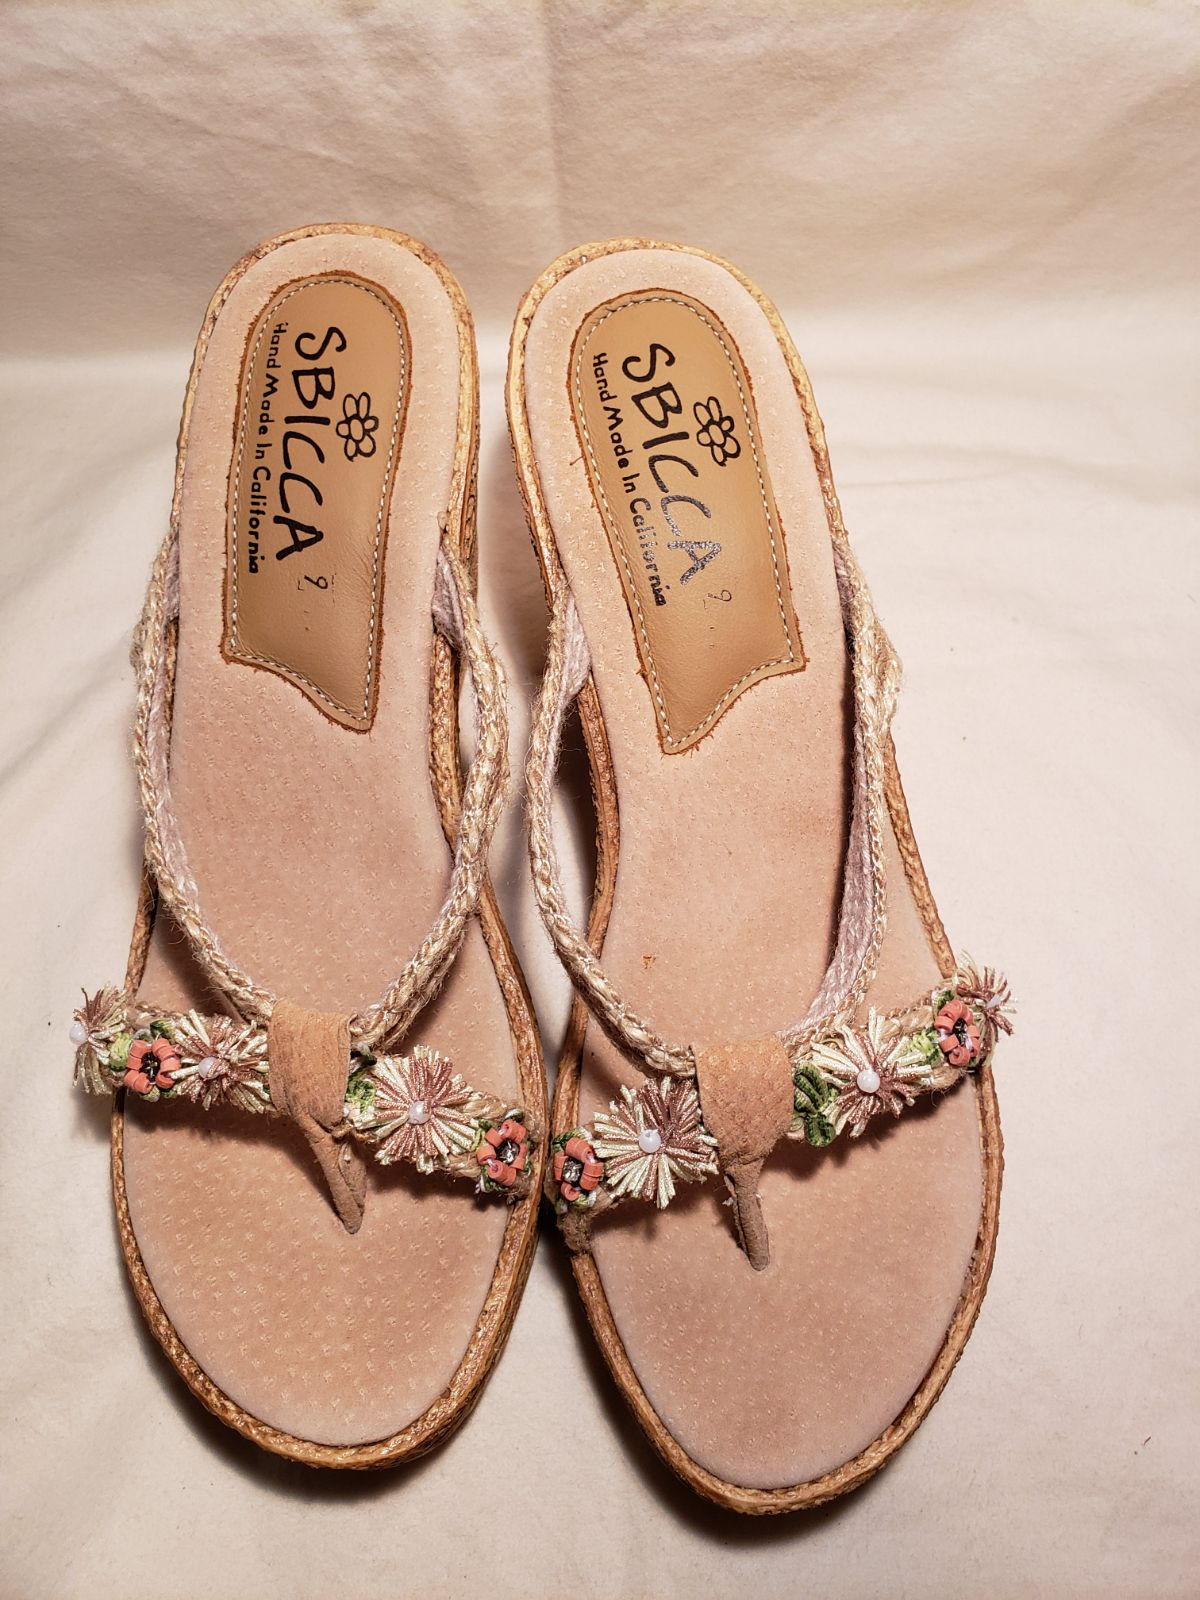 Hippie Floral Crowtopew Wedge Sandals